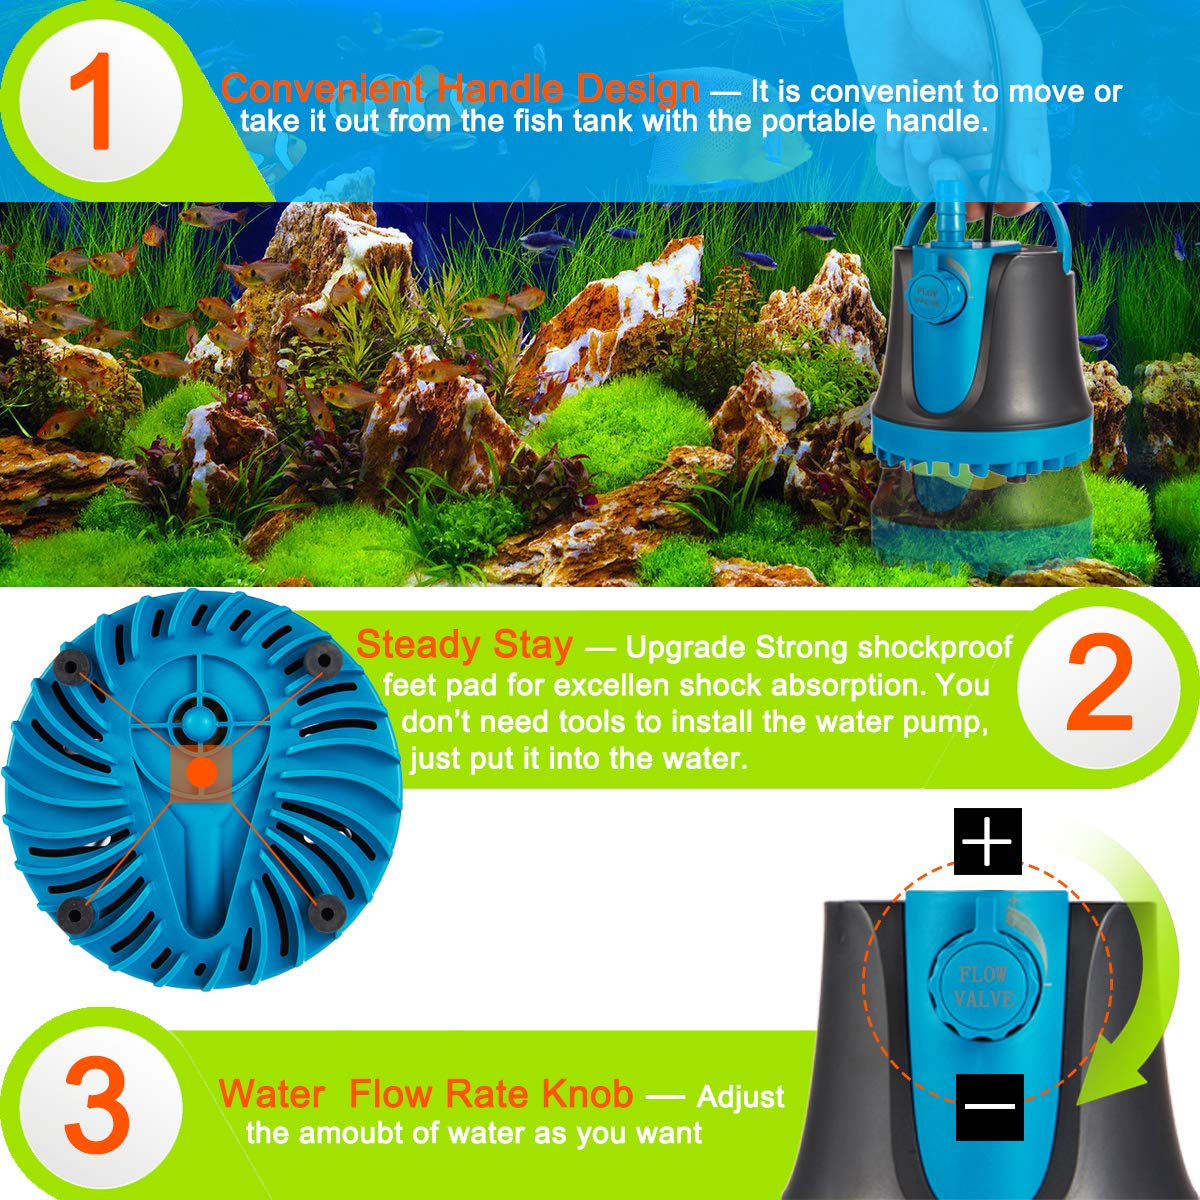 Adjustable Ultra Quiet Water Pump for Aquarium 1800L//H, 25W Fish Tank IDREAMO Submersible Water Pump Pond 475GPH Statuary Hydroponics with 2 Nozzles,5 Feet Power Cord